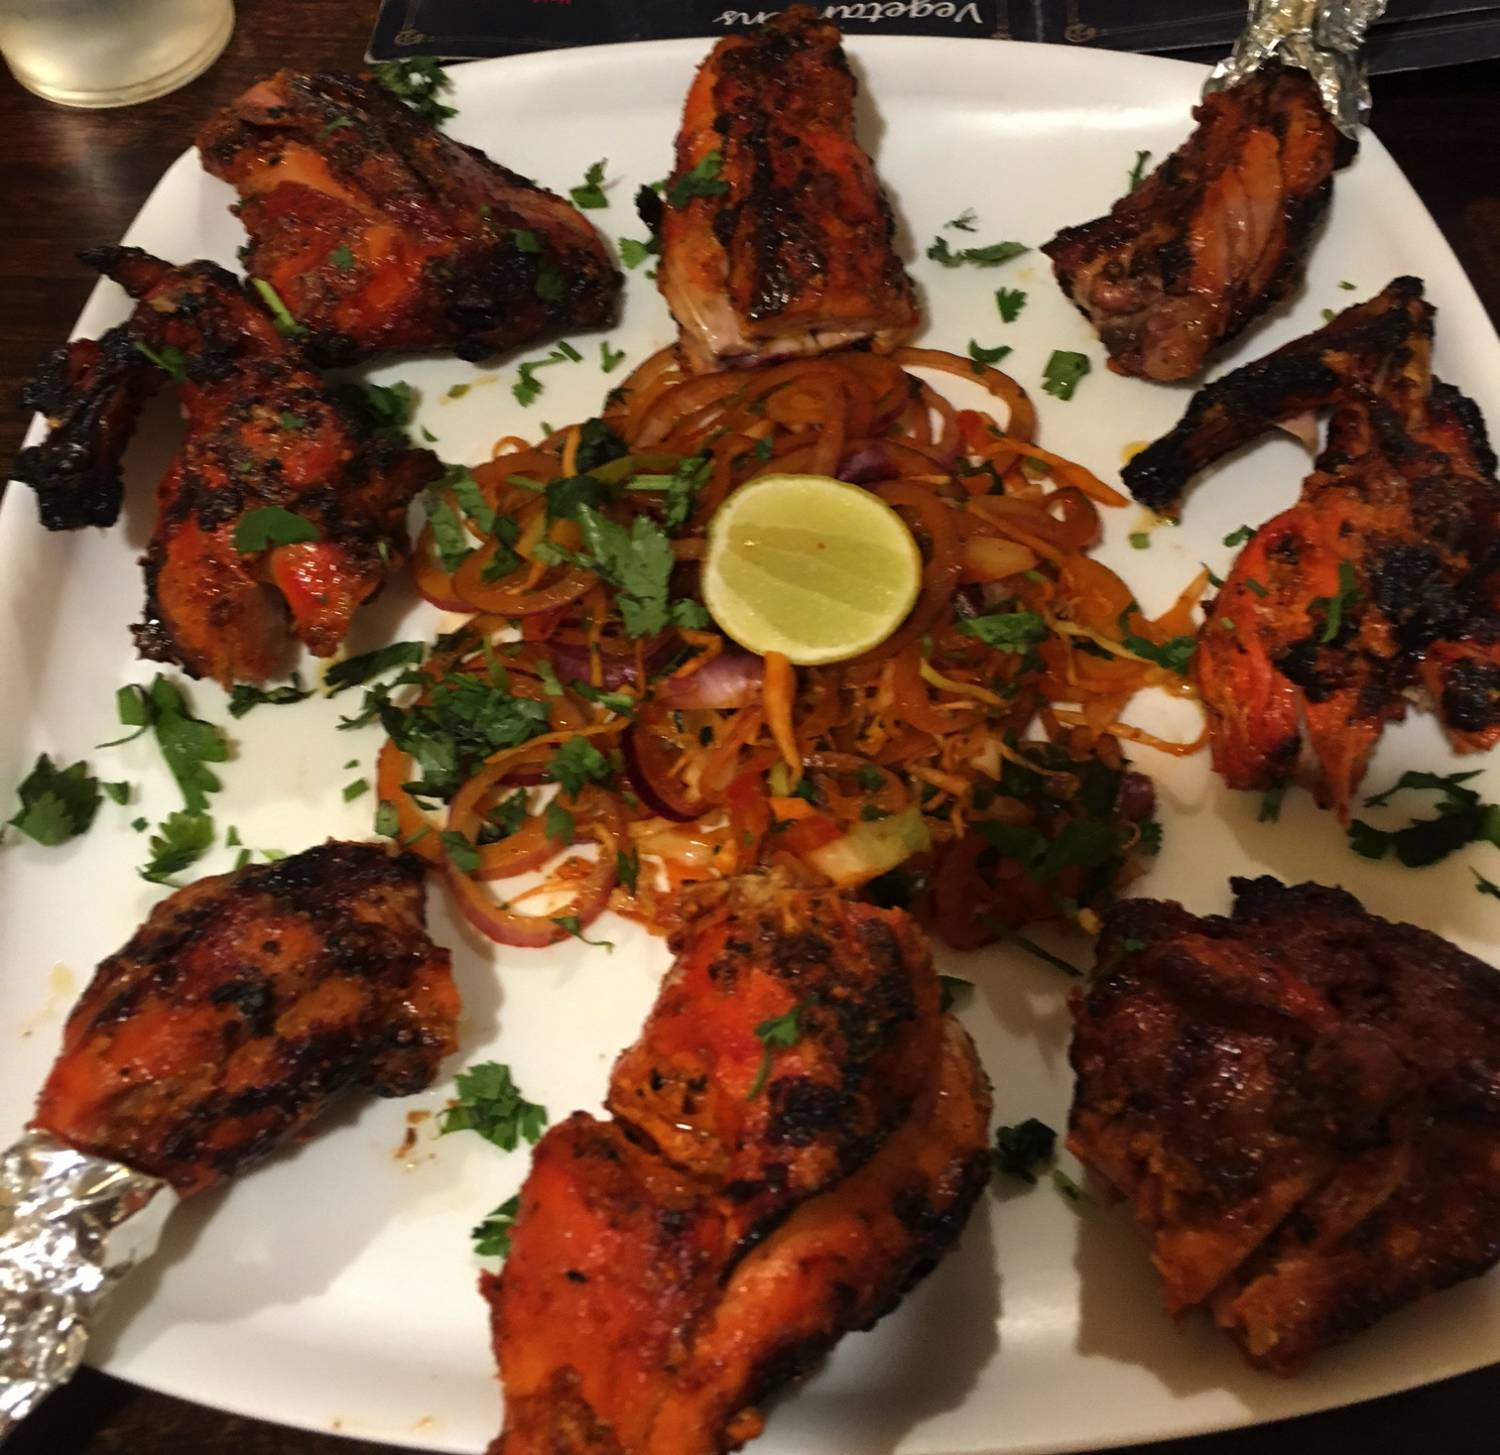 Food Tour in Jaipur - Tandoori Chicken